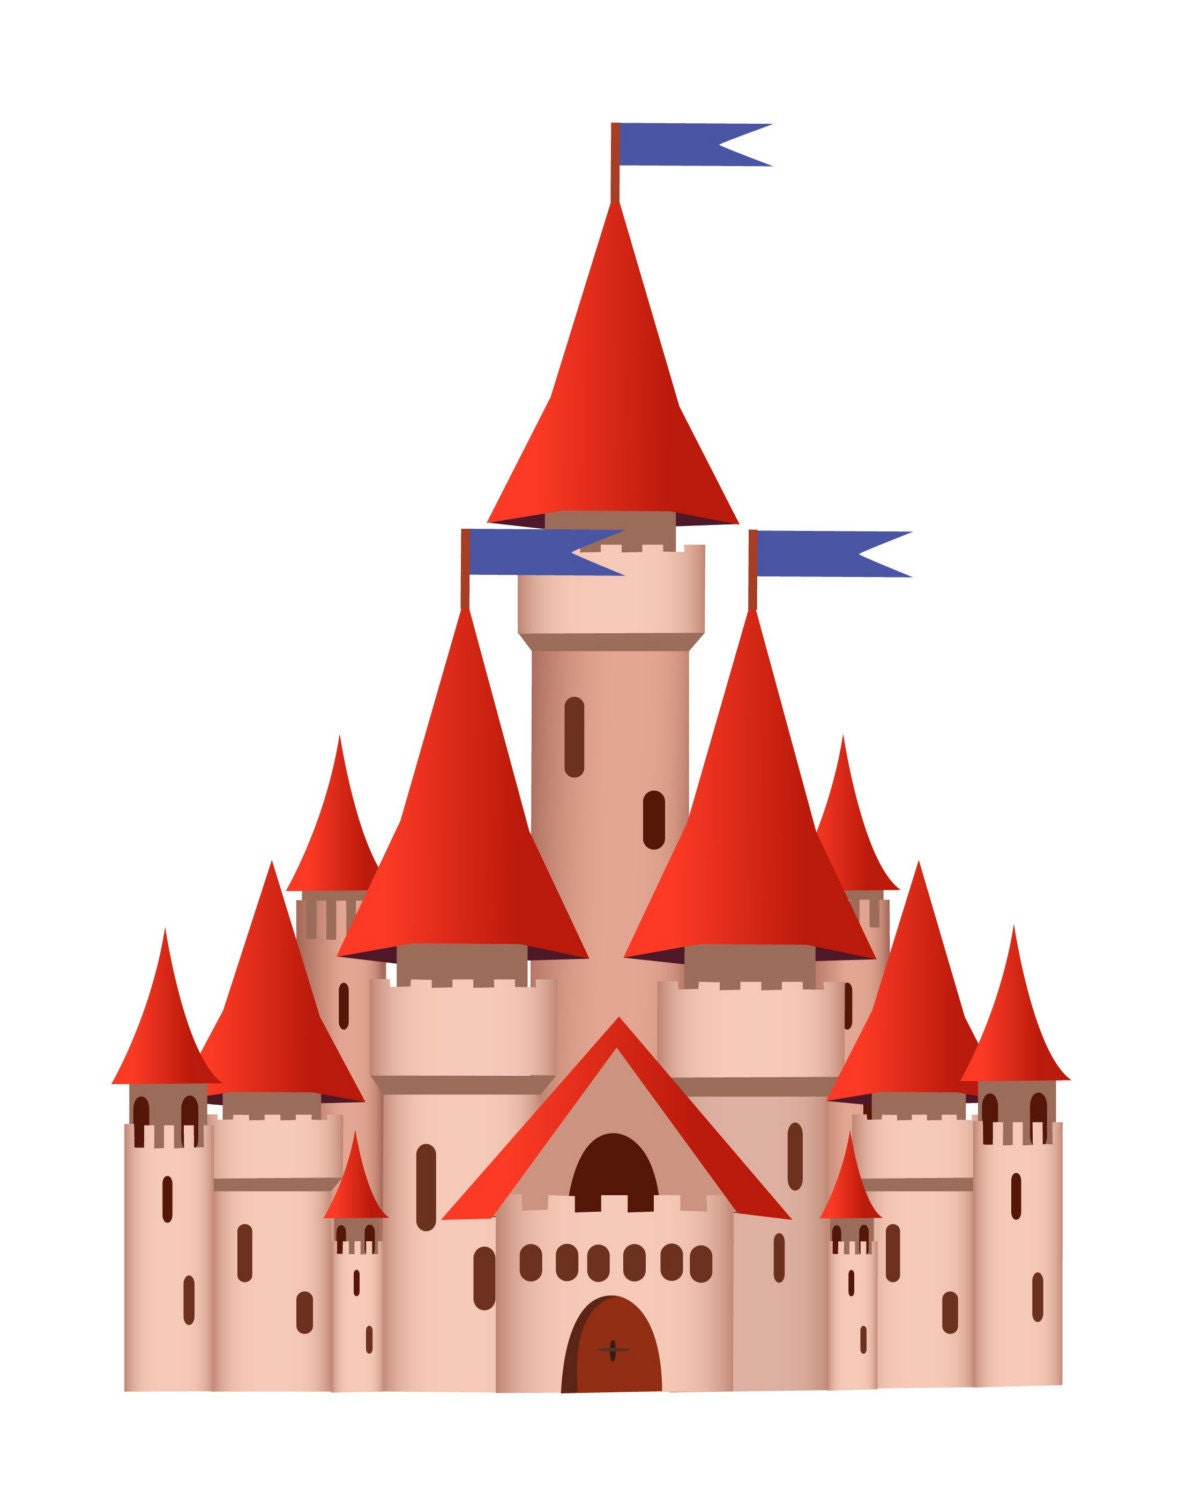 Peel and stick castle sticker repositionable removable castle for Castle wall mural sticker